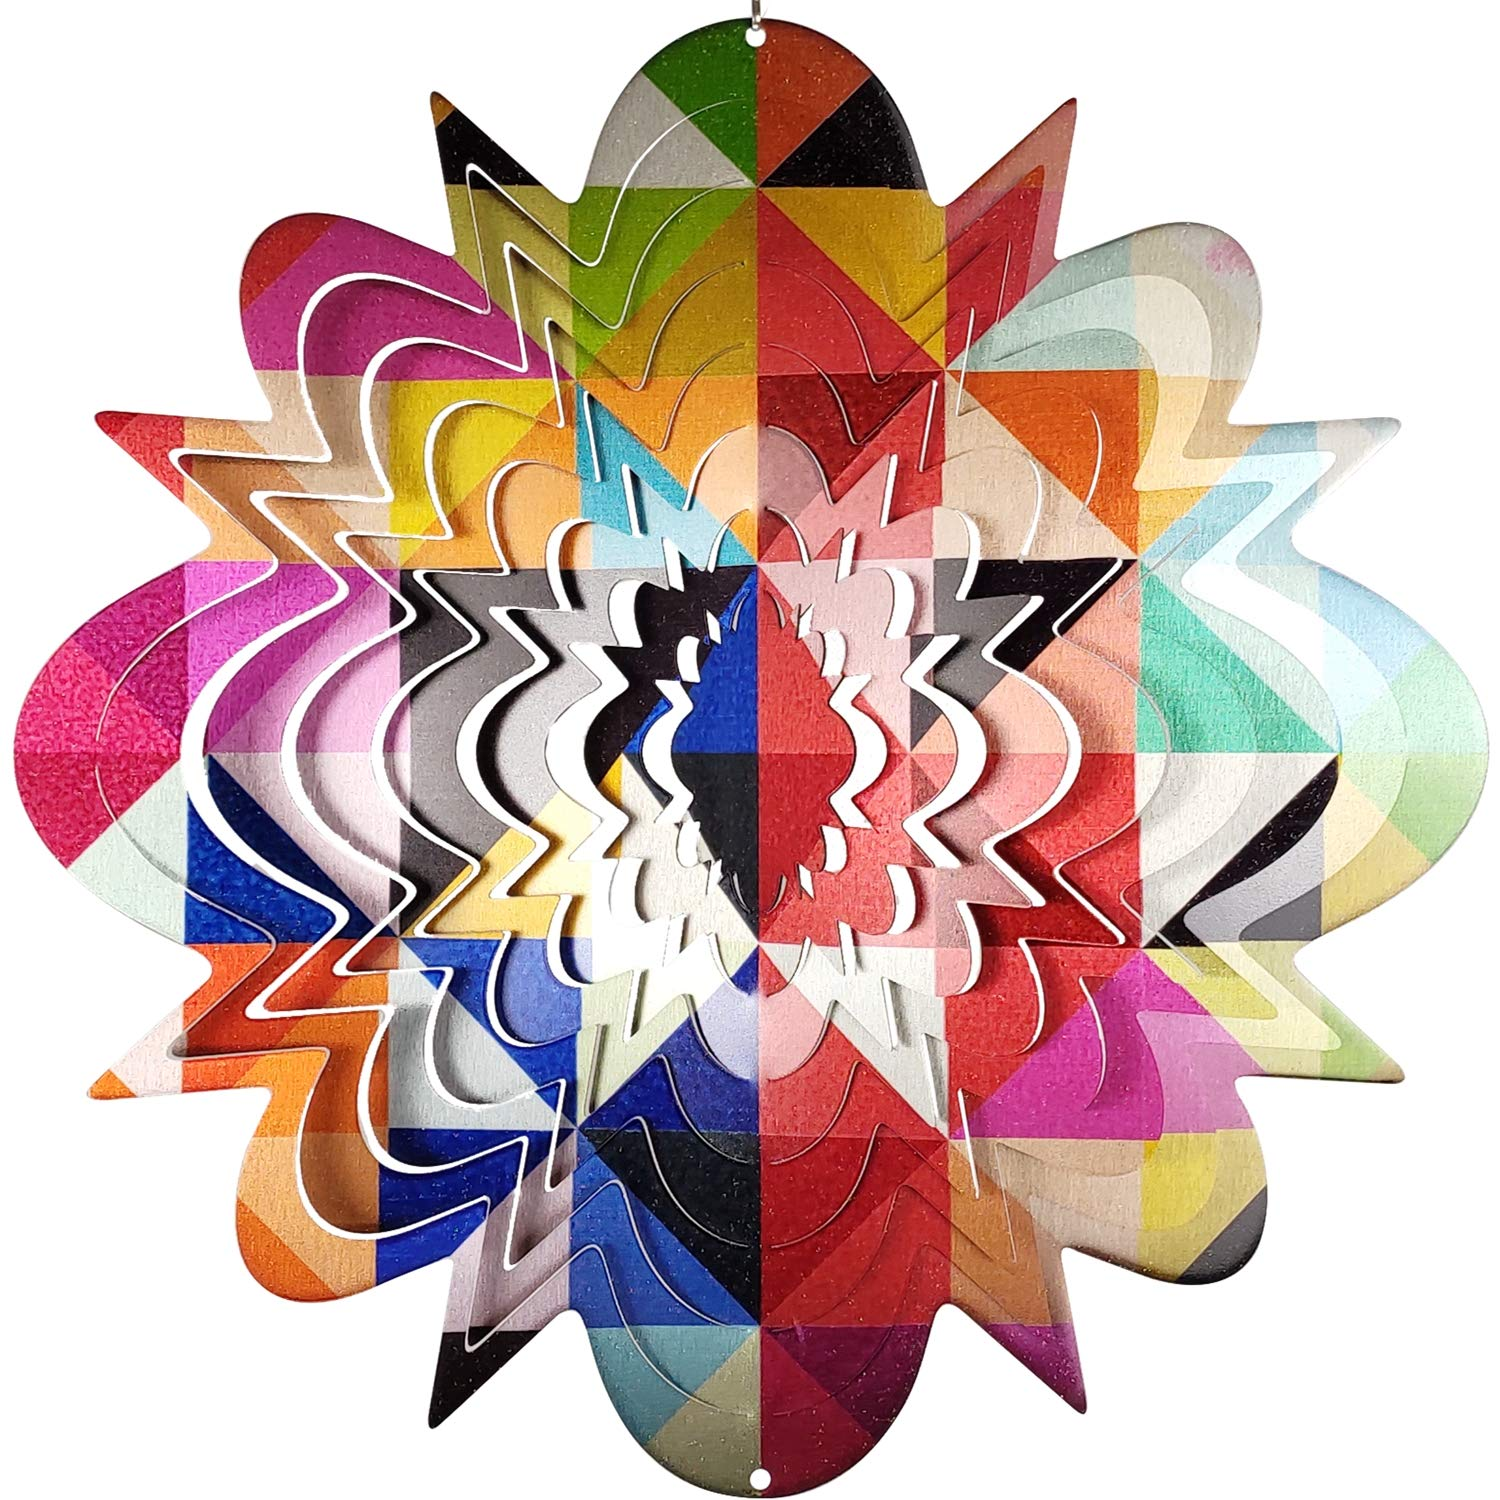 OUTOUR Colorful Grid Stainless Steel 3D Wind Spinner Indoor Outdoor Garden Decoration Crafts Ornaments 12Inch Multi Color by OUTOUR